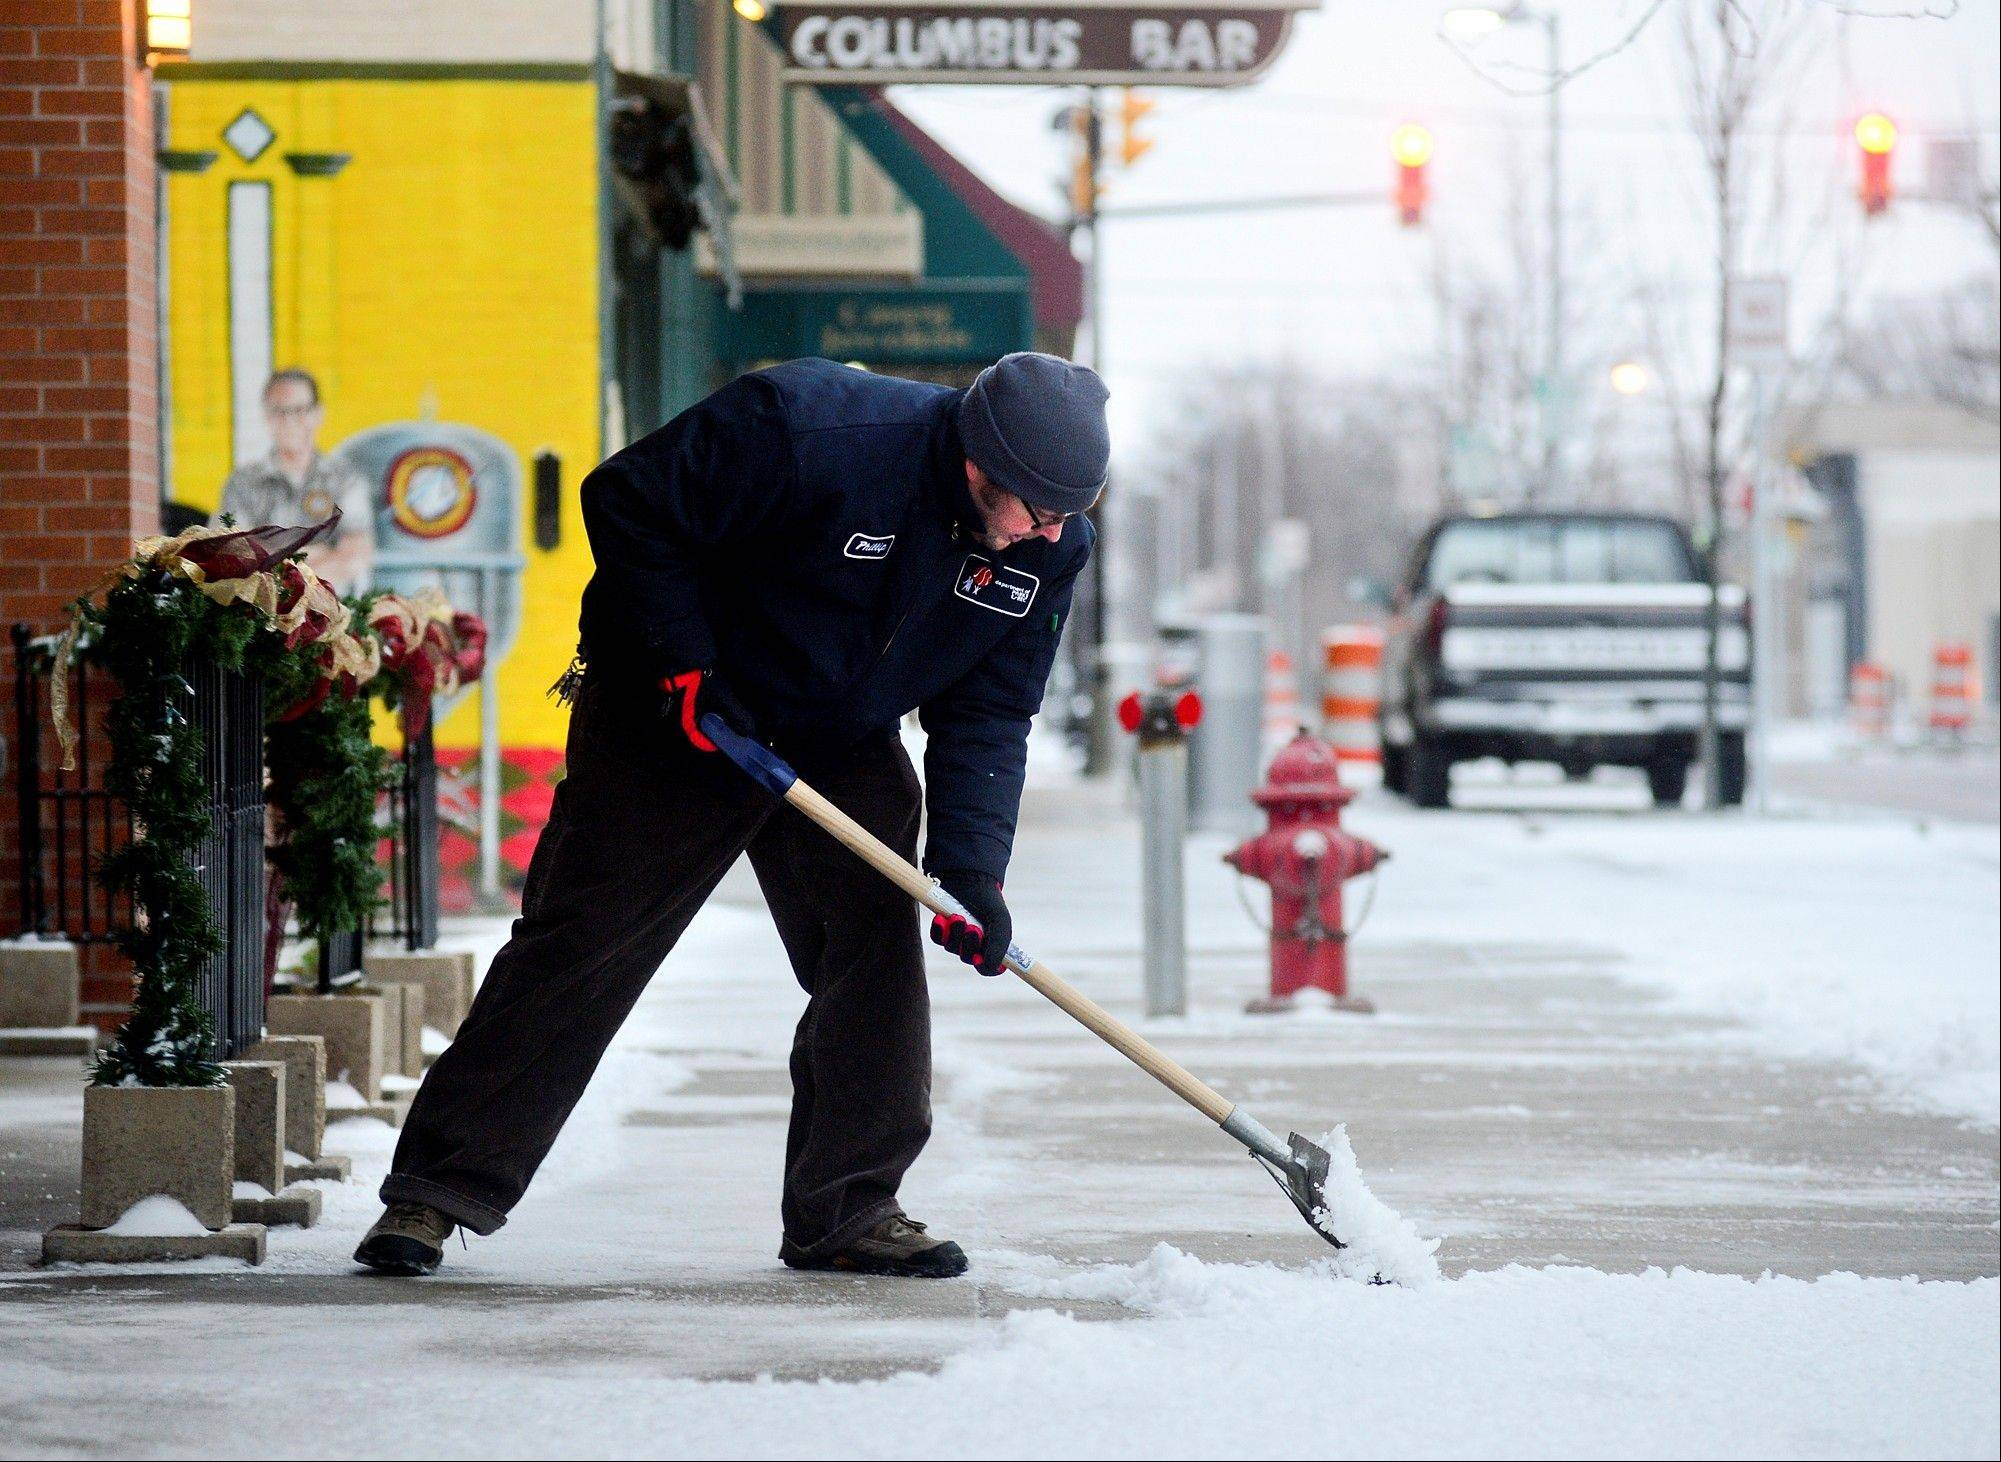 Department of Parks and Recreation employee Phillip Forney shovels snow and ice Friday in downtown Columbus, Ind.